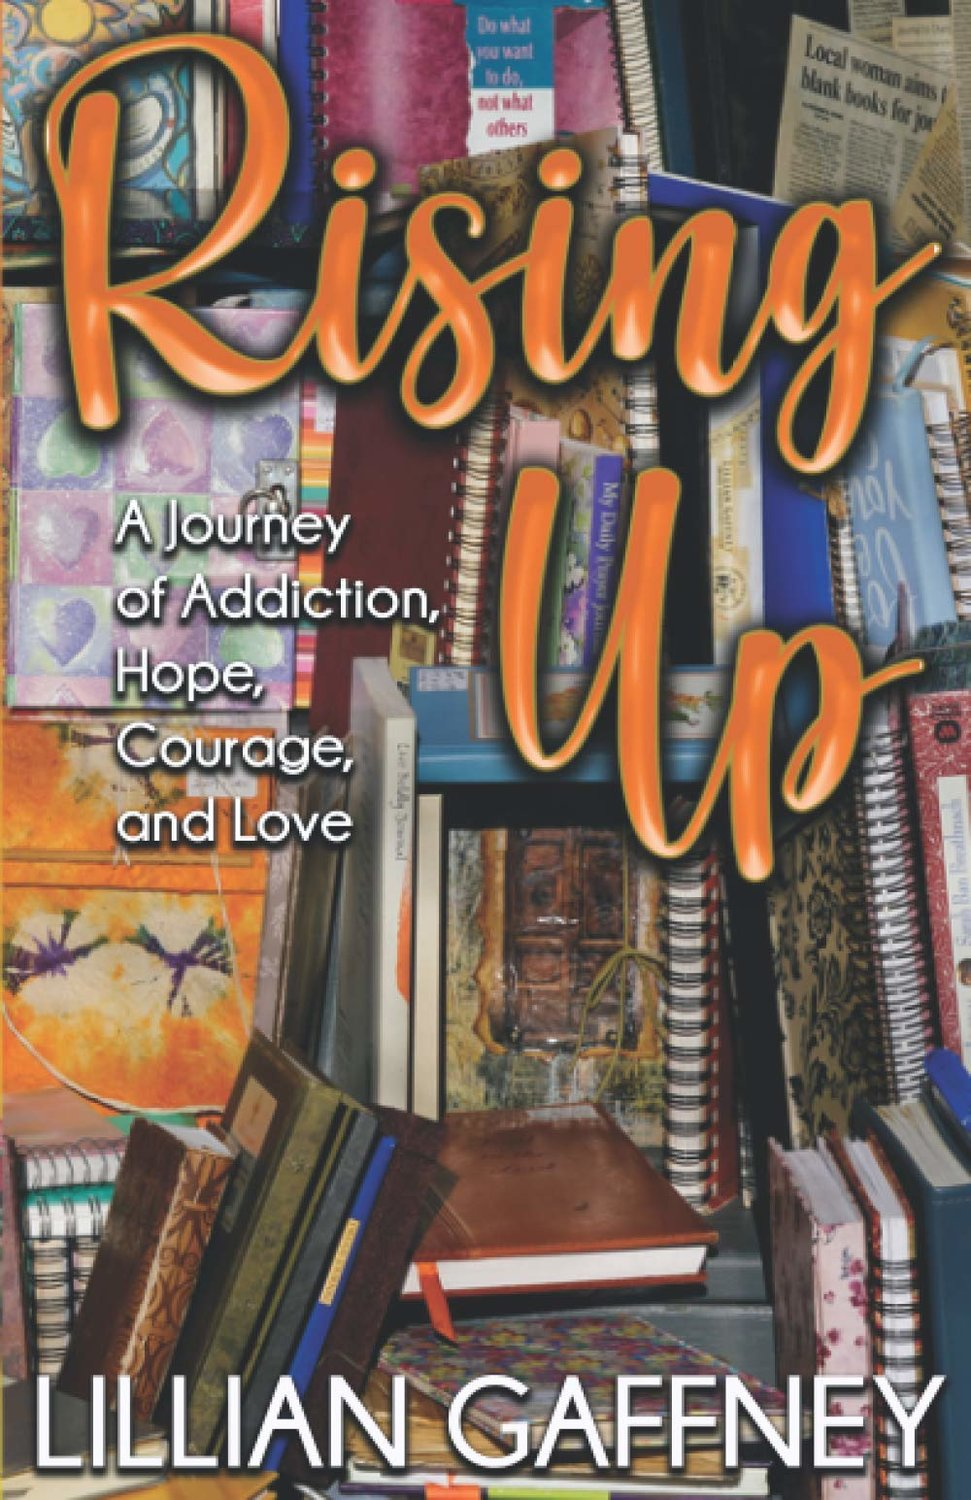 """Rising Up,"" just published by Lillian Gaffney of Glenside, has received 11 reviews so far on amazon.com, all of which are five stars."